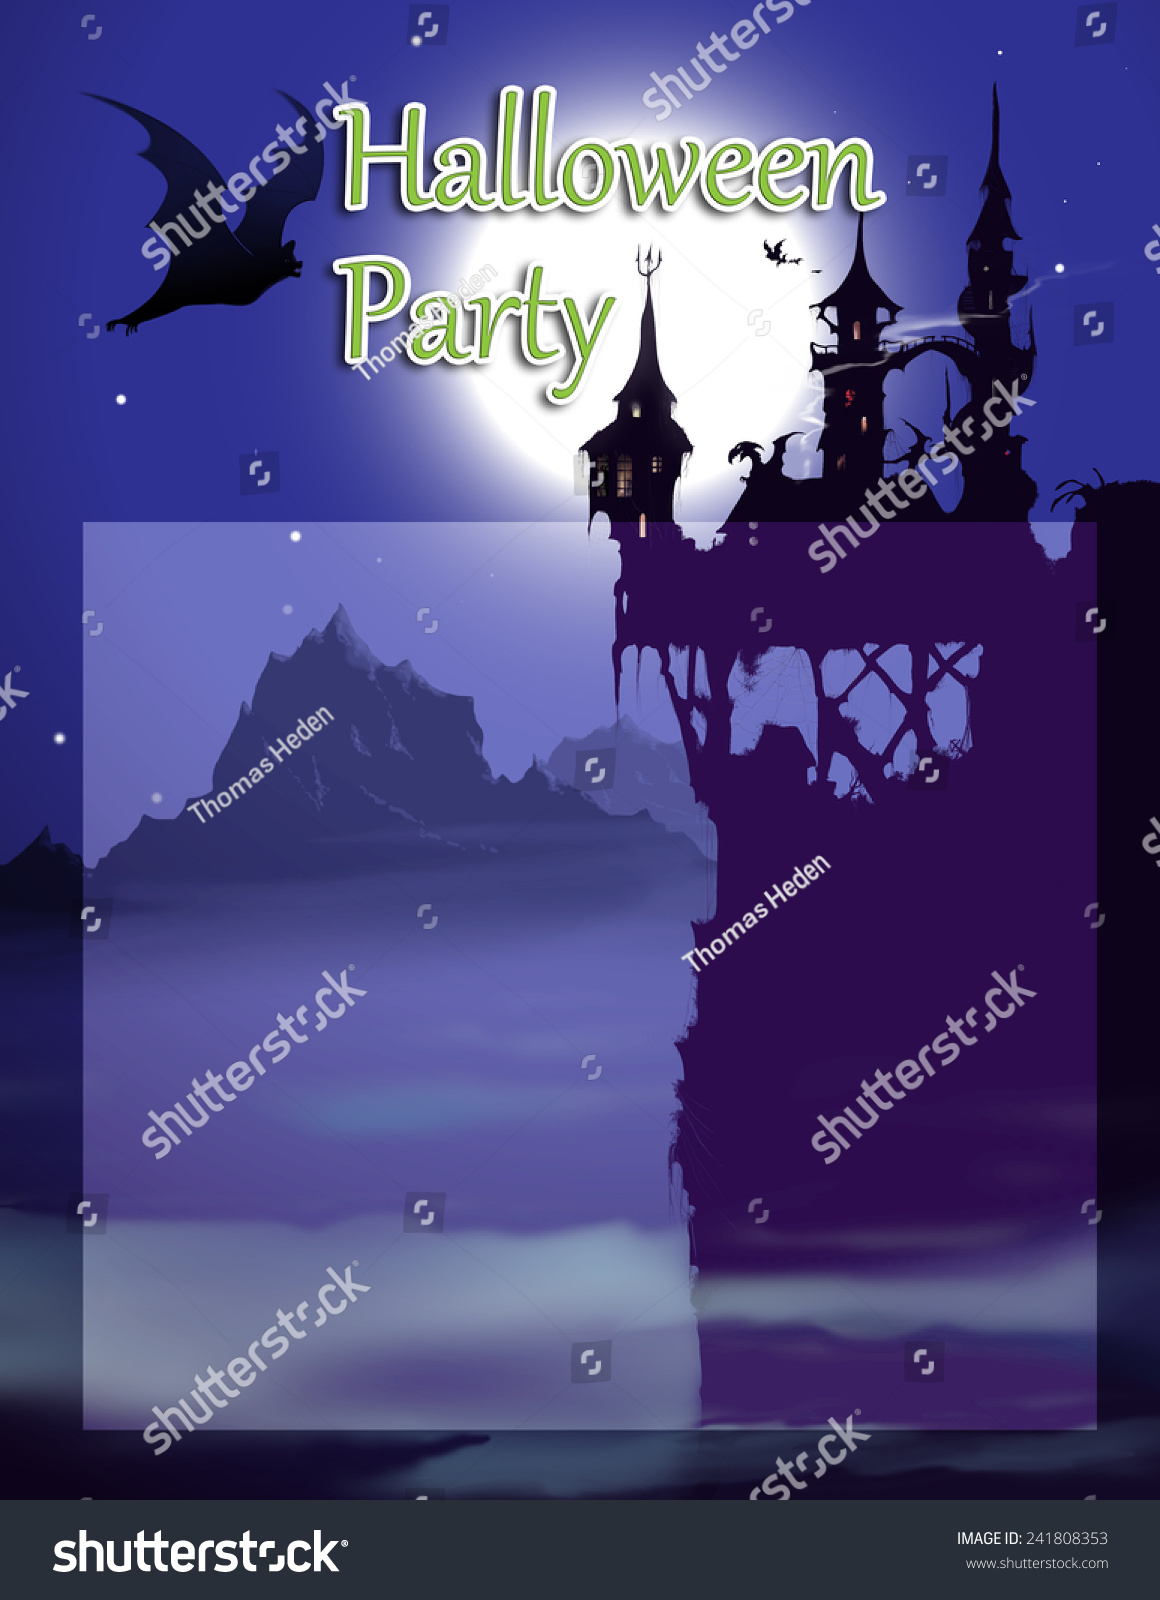 Halloween Party Invitation Background Add Your Illustration – Party Invitation Background